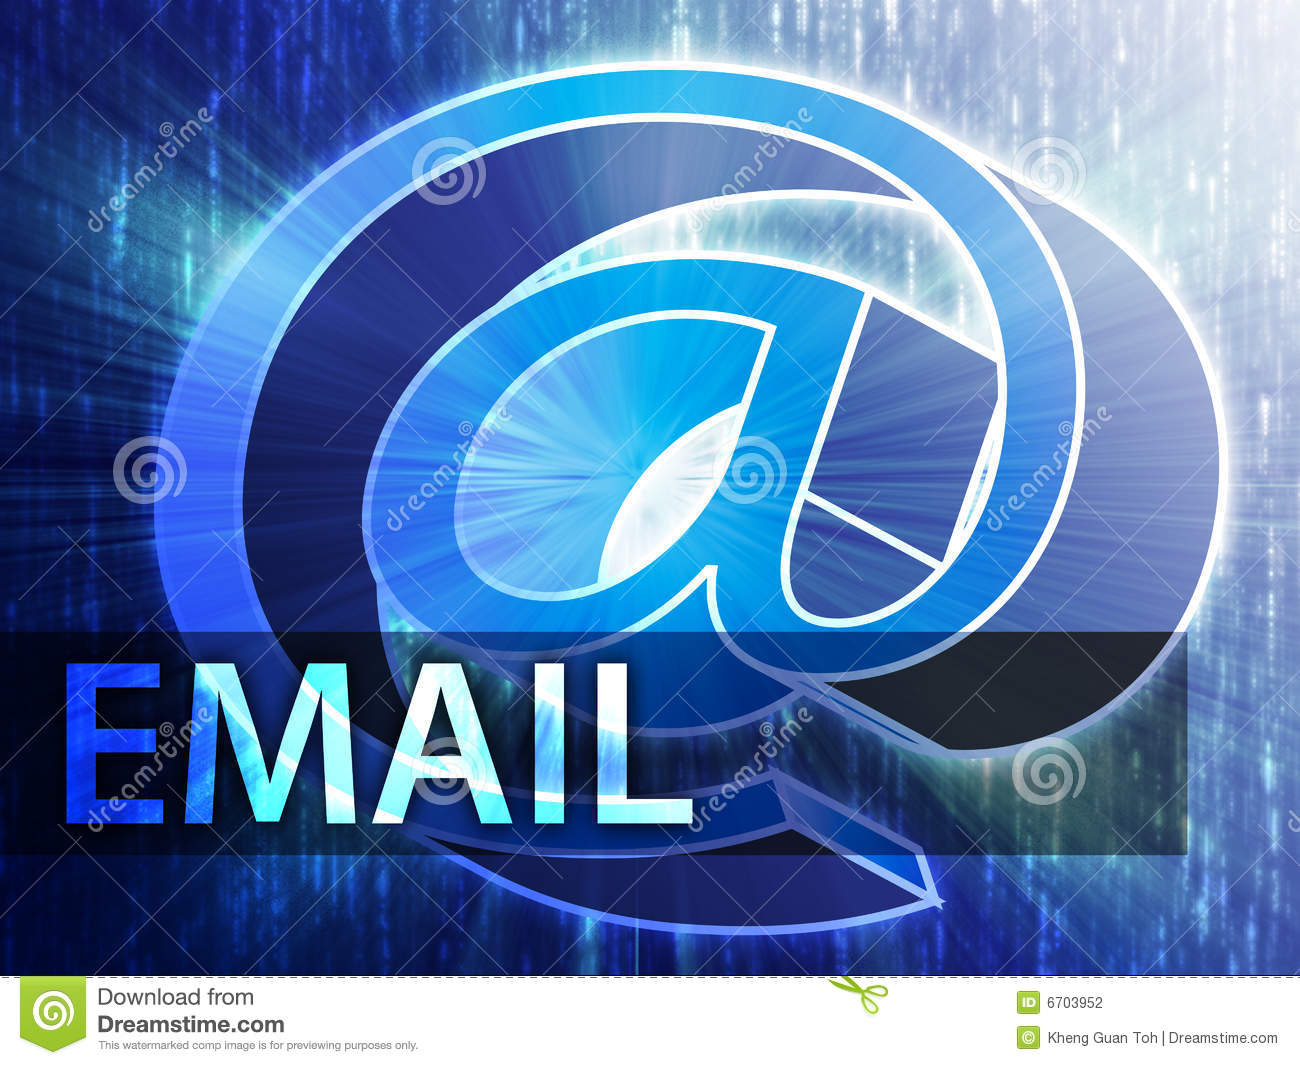 Email illustration